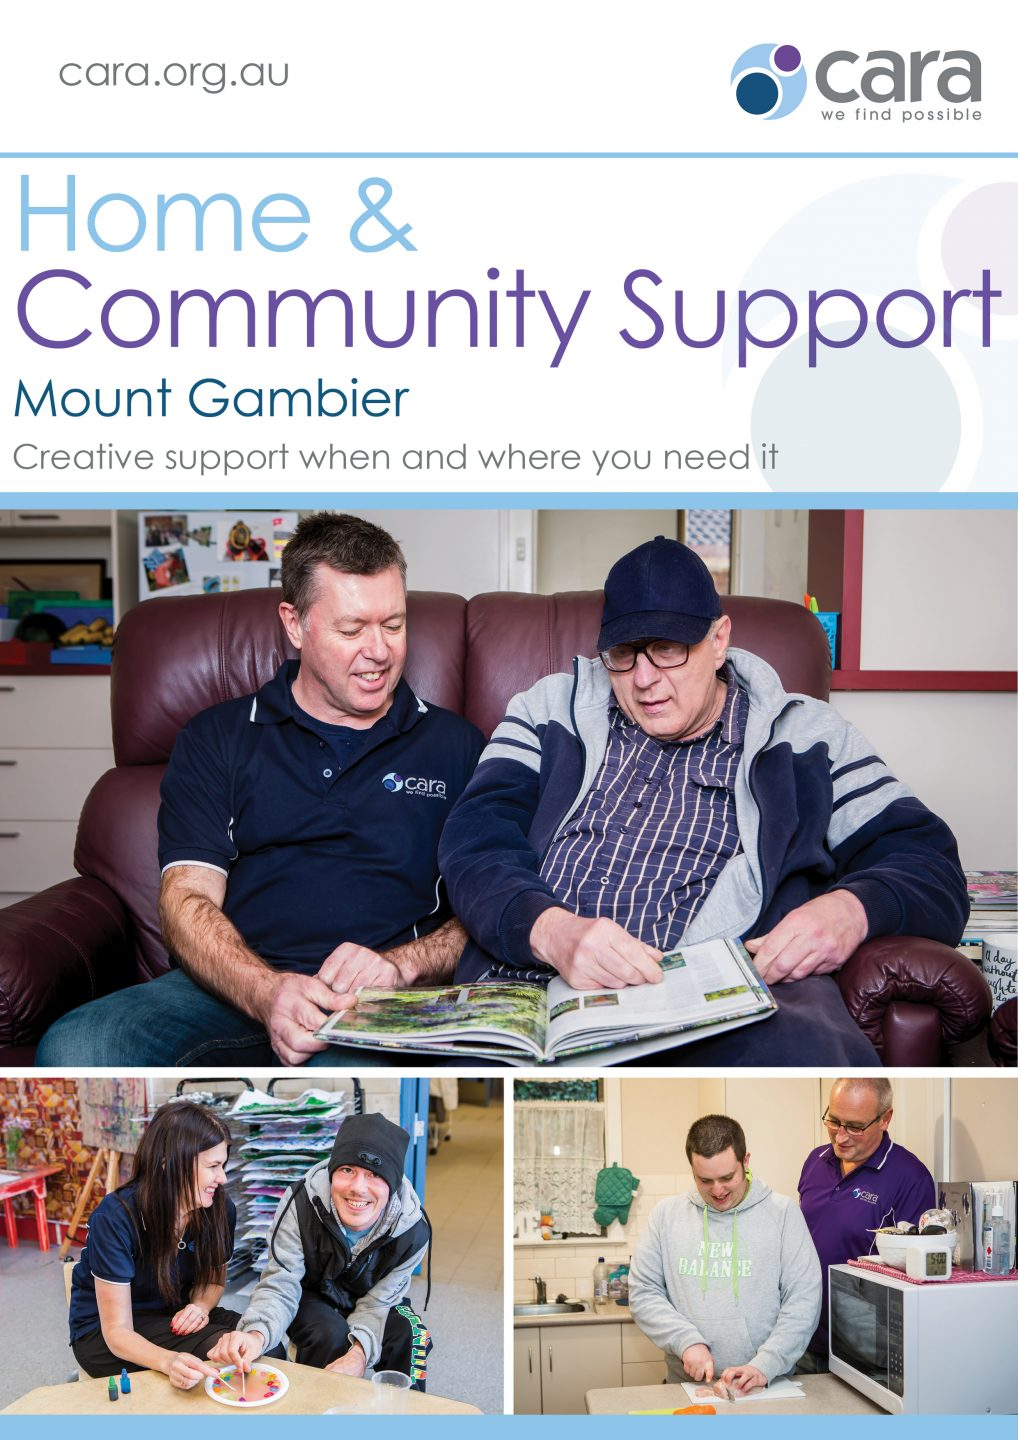 Home & Community Support Mount Gambier